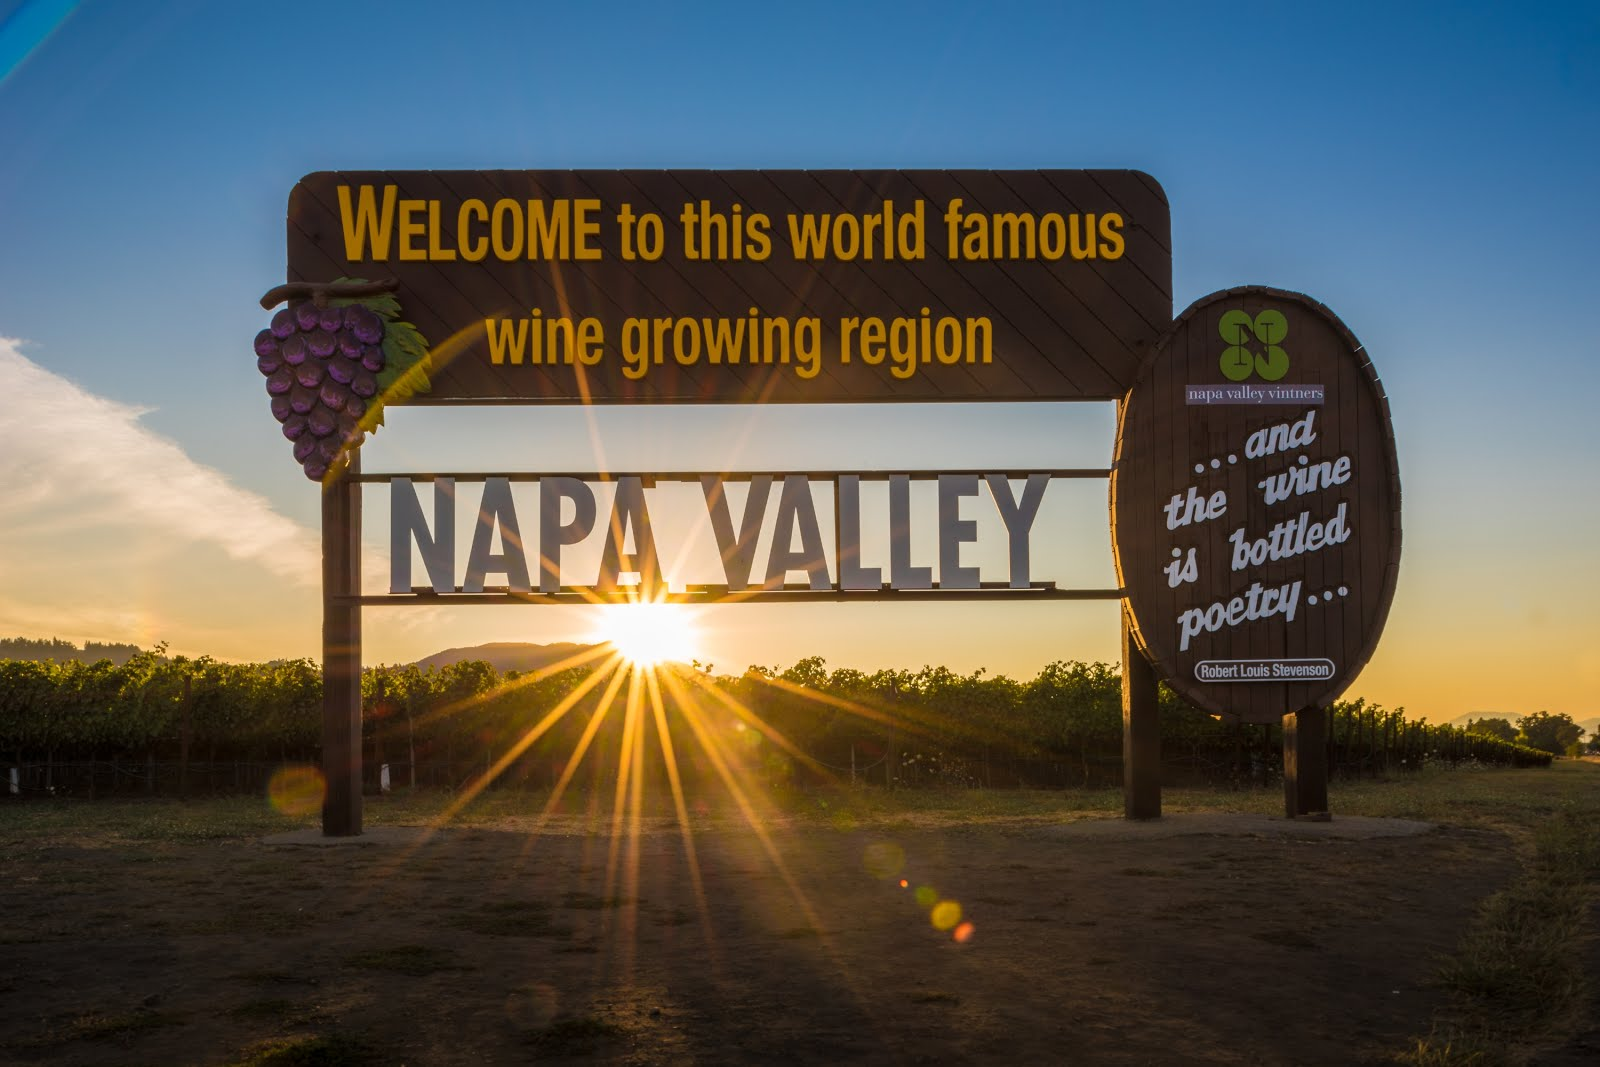 Napa Valley is alive and well.